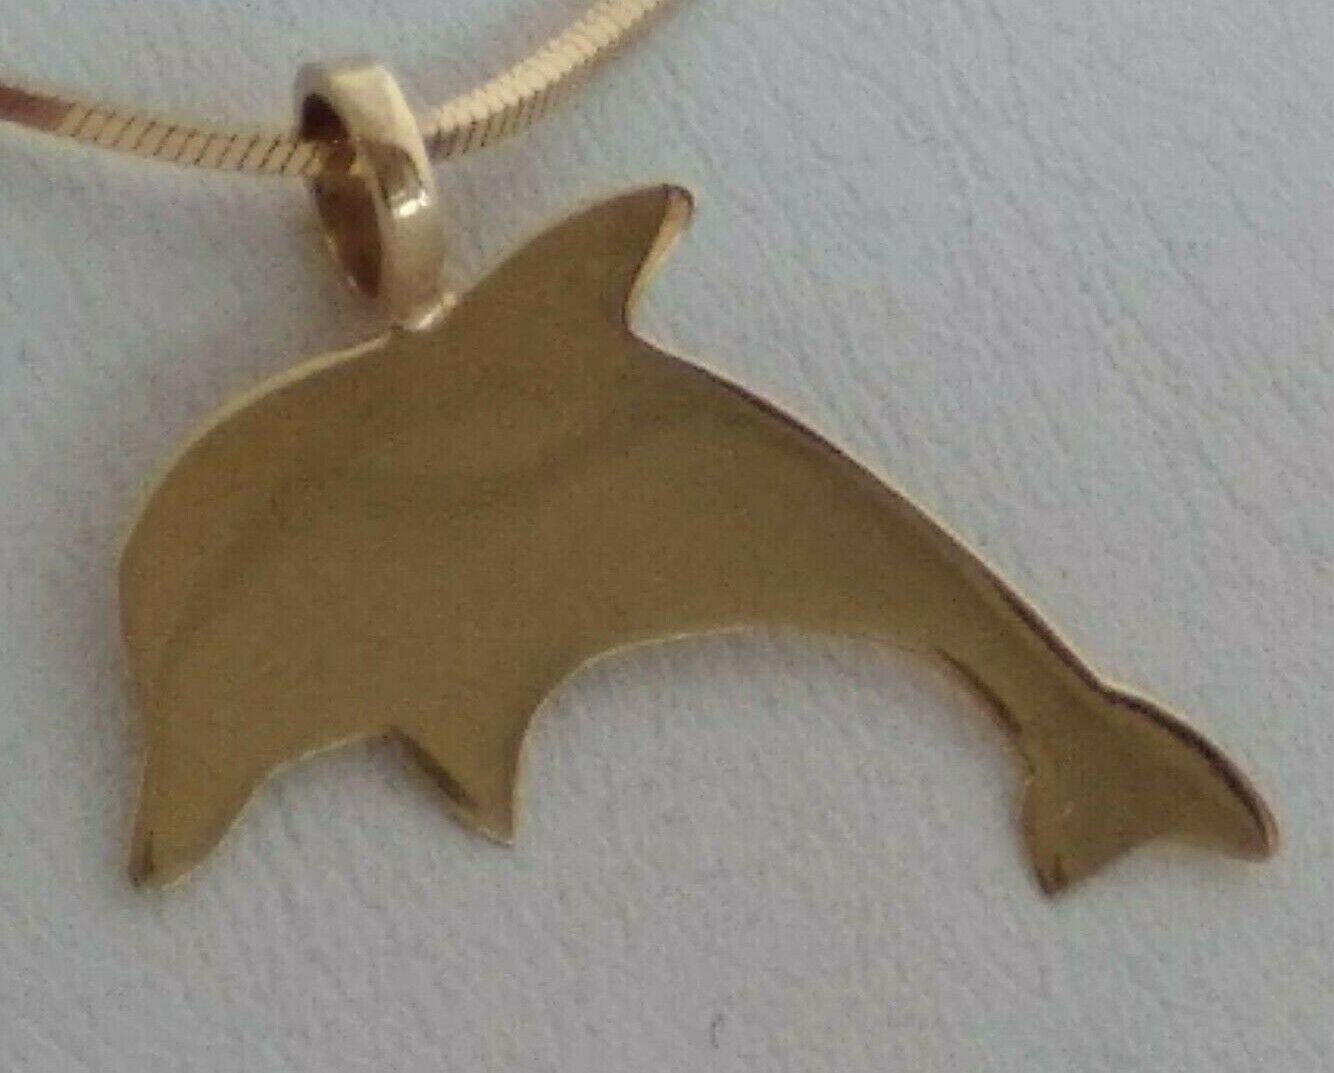 Medal gold 19,2kt dolphin shape classic without pearls